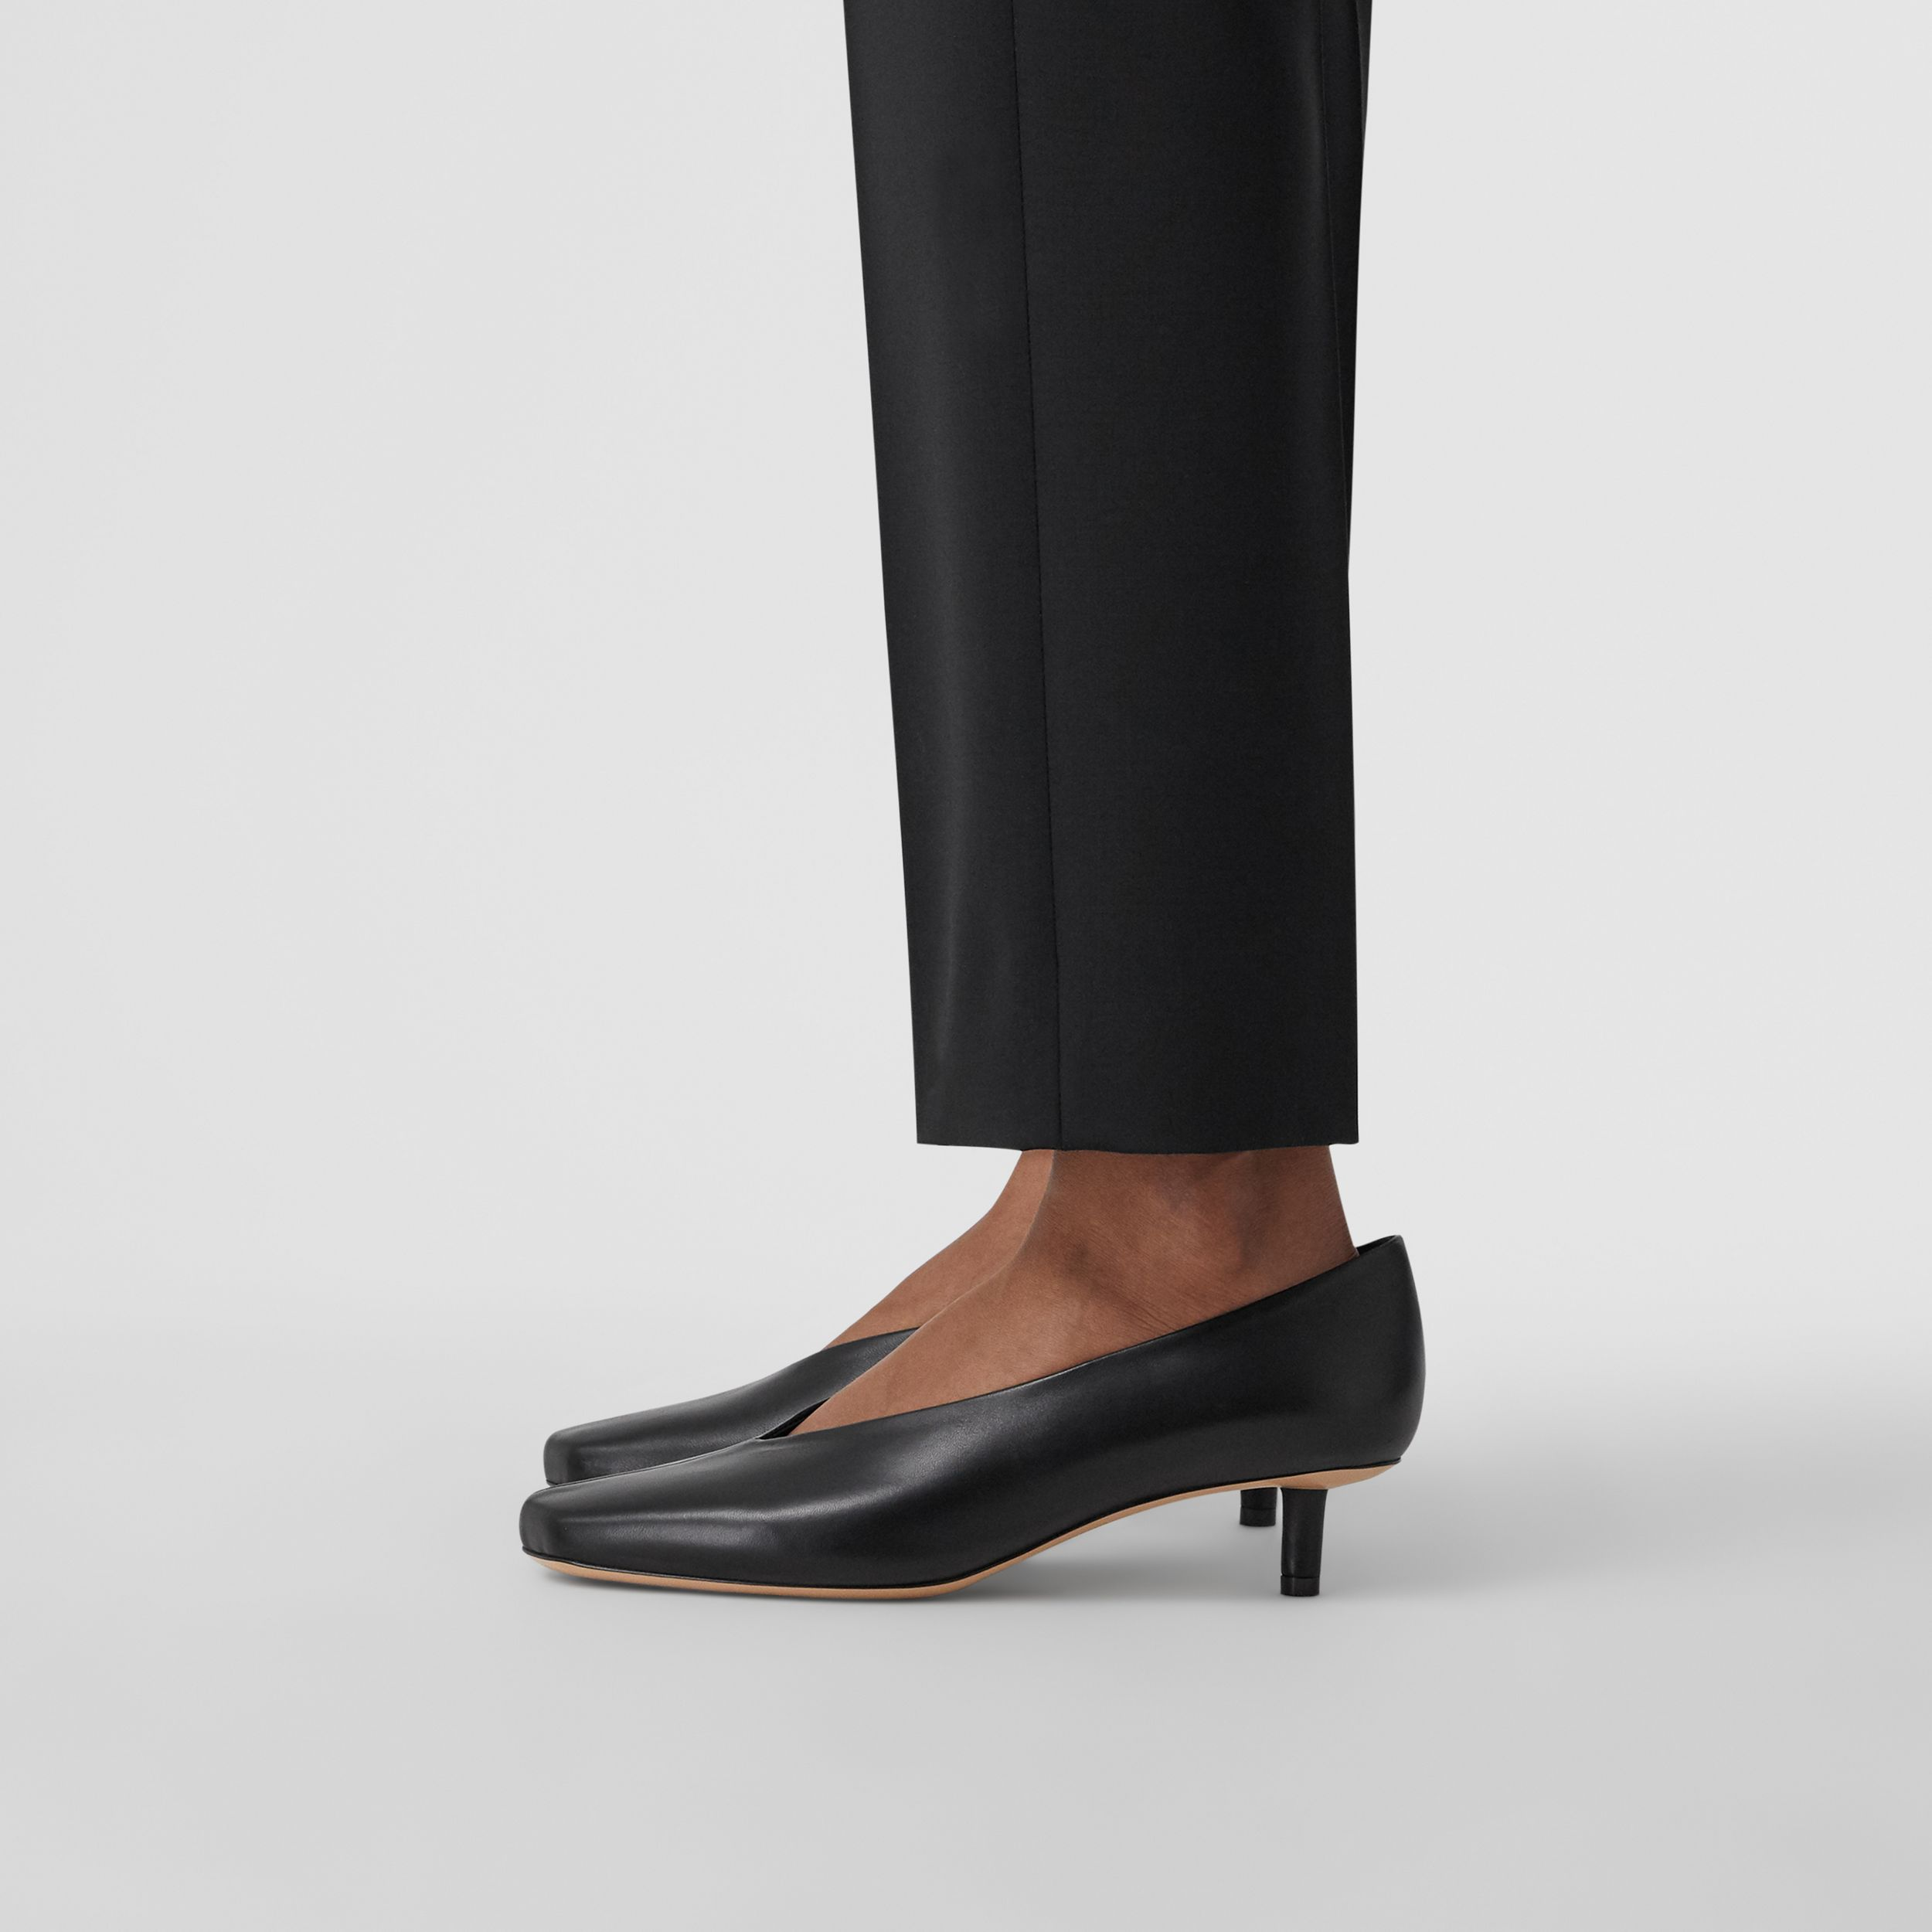 Lambskin Sculptural Kitten-heel Pumps in Black - Women | Burberry - 3